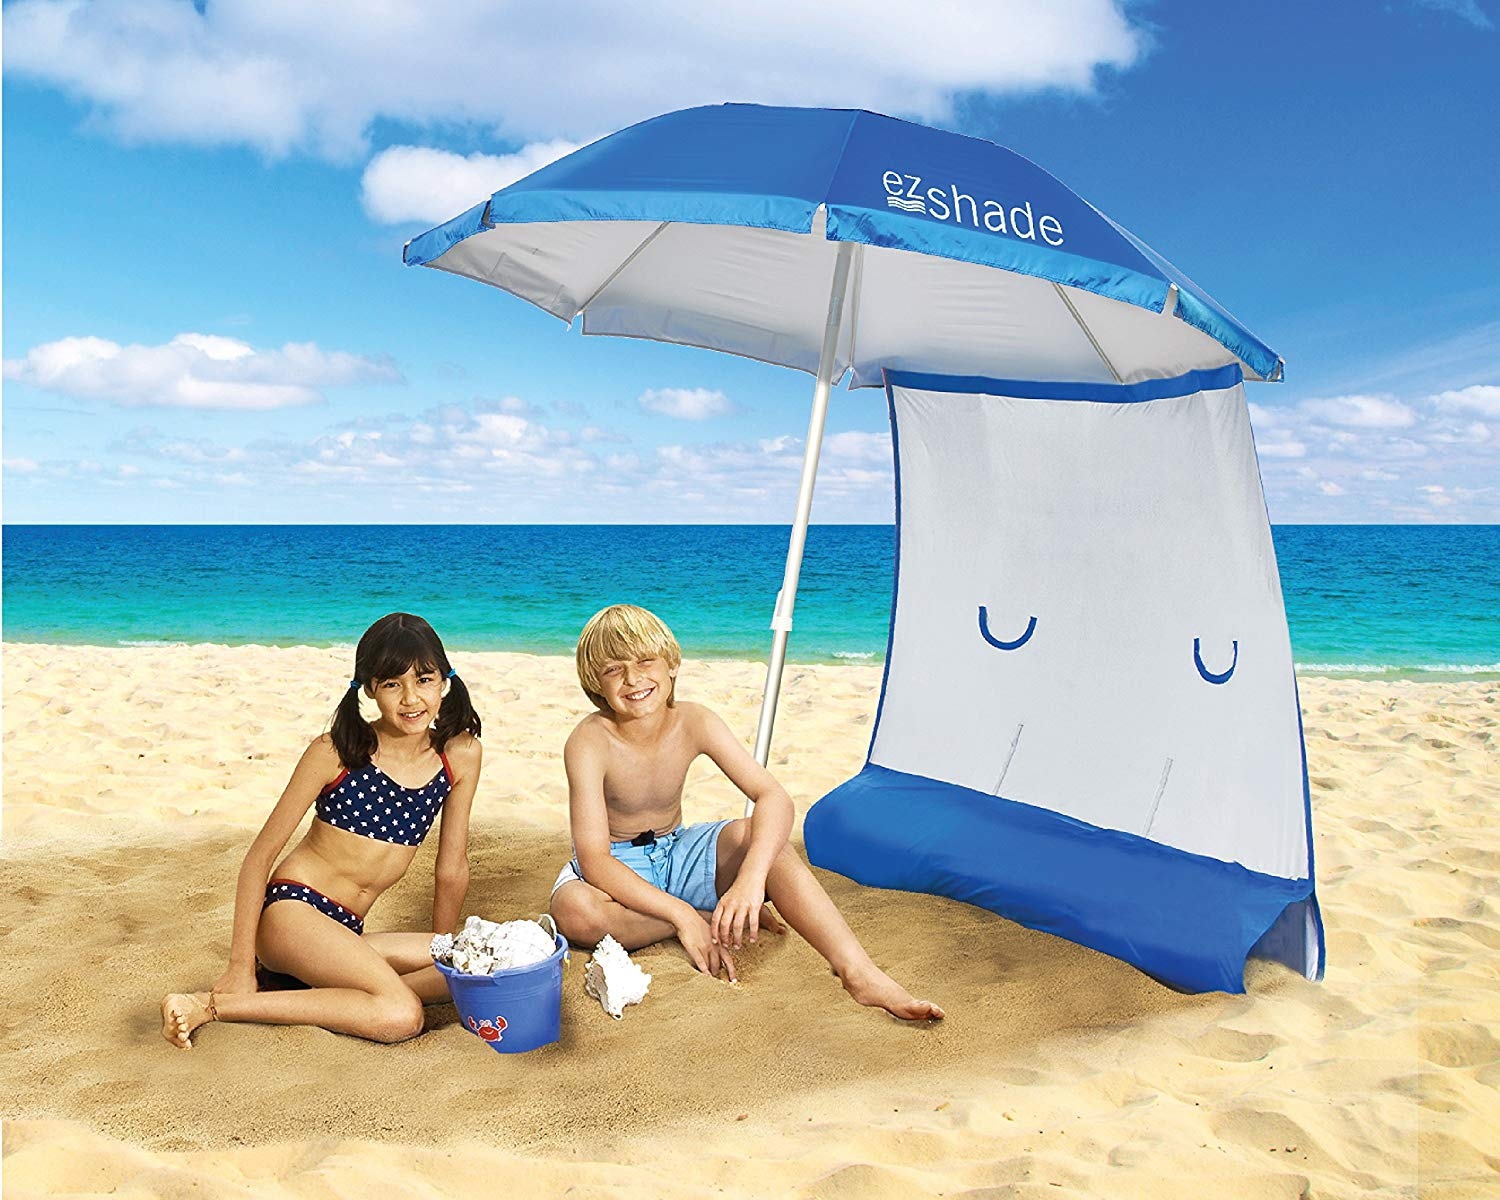 ezShade Superior Sun Protection, Ultra Lightweight 7' Beach Umbrella & Sunshield Combo, Blocks 99% UVA/UVB, Doubles Your Shade and Keeps You Cooler